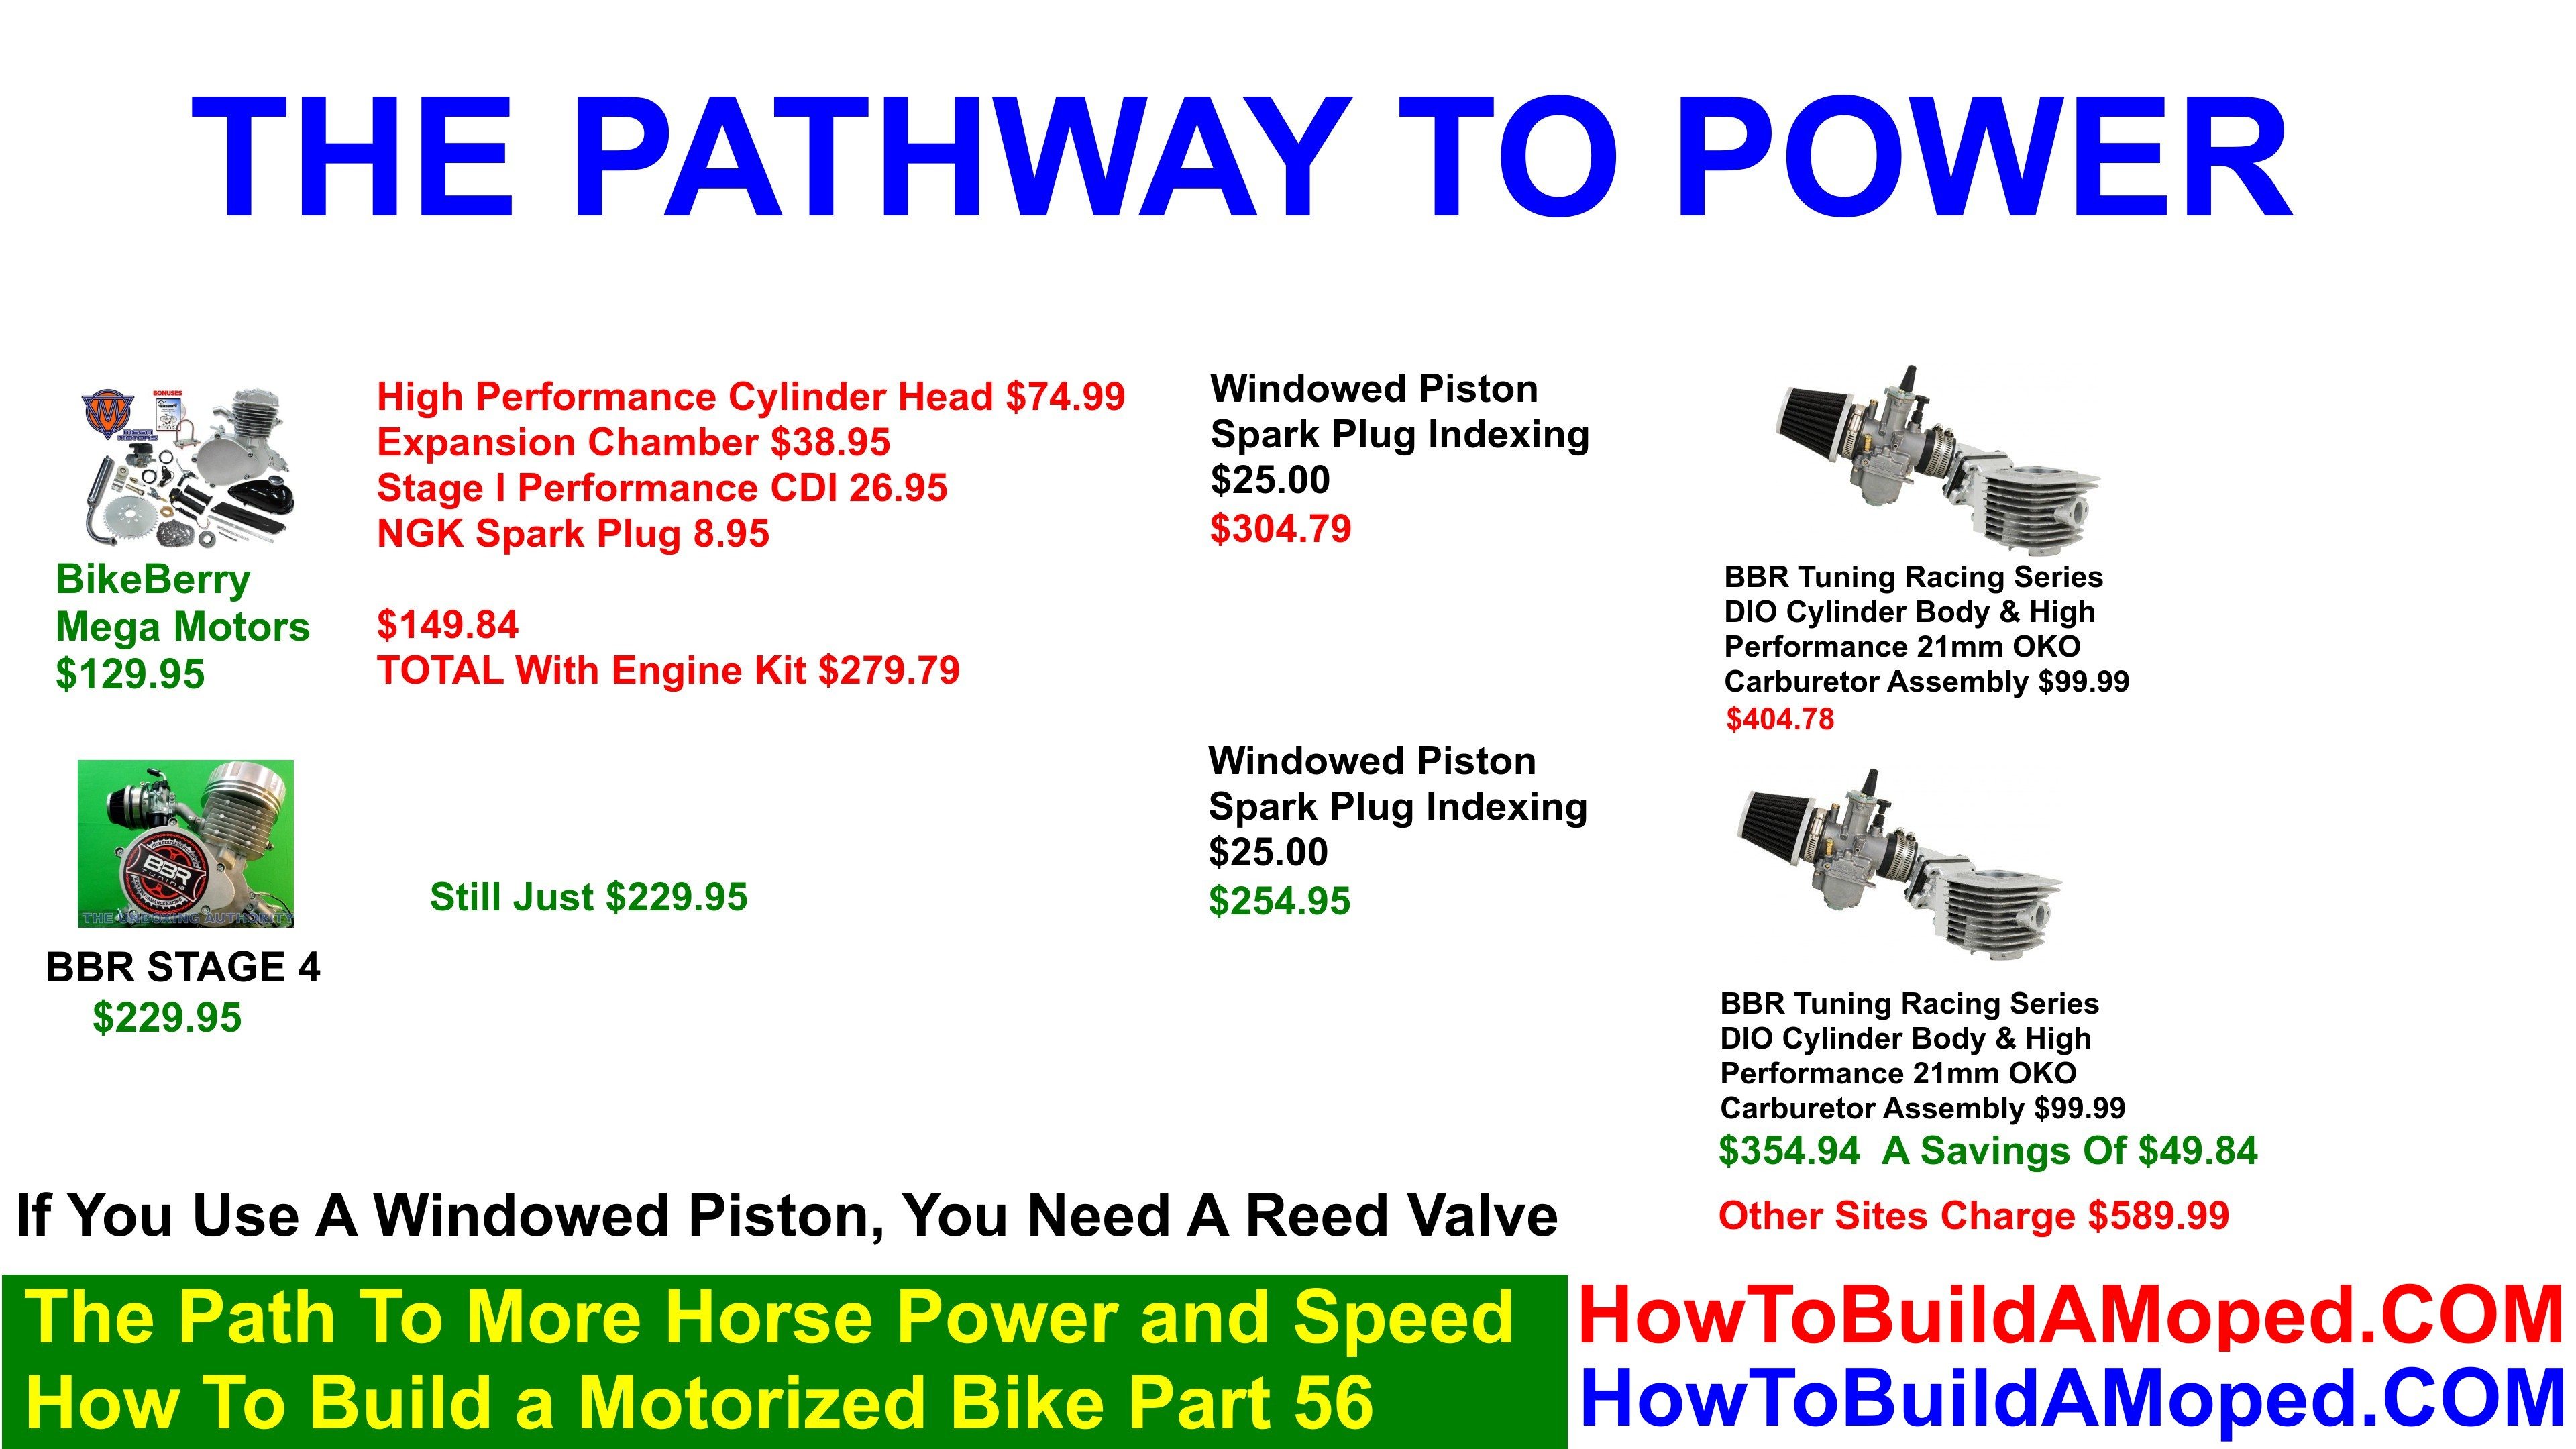 The Path To More Horse Power and Speed How To Build a Motorized Bike Part 56